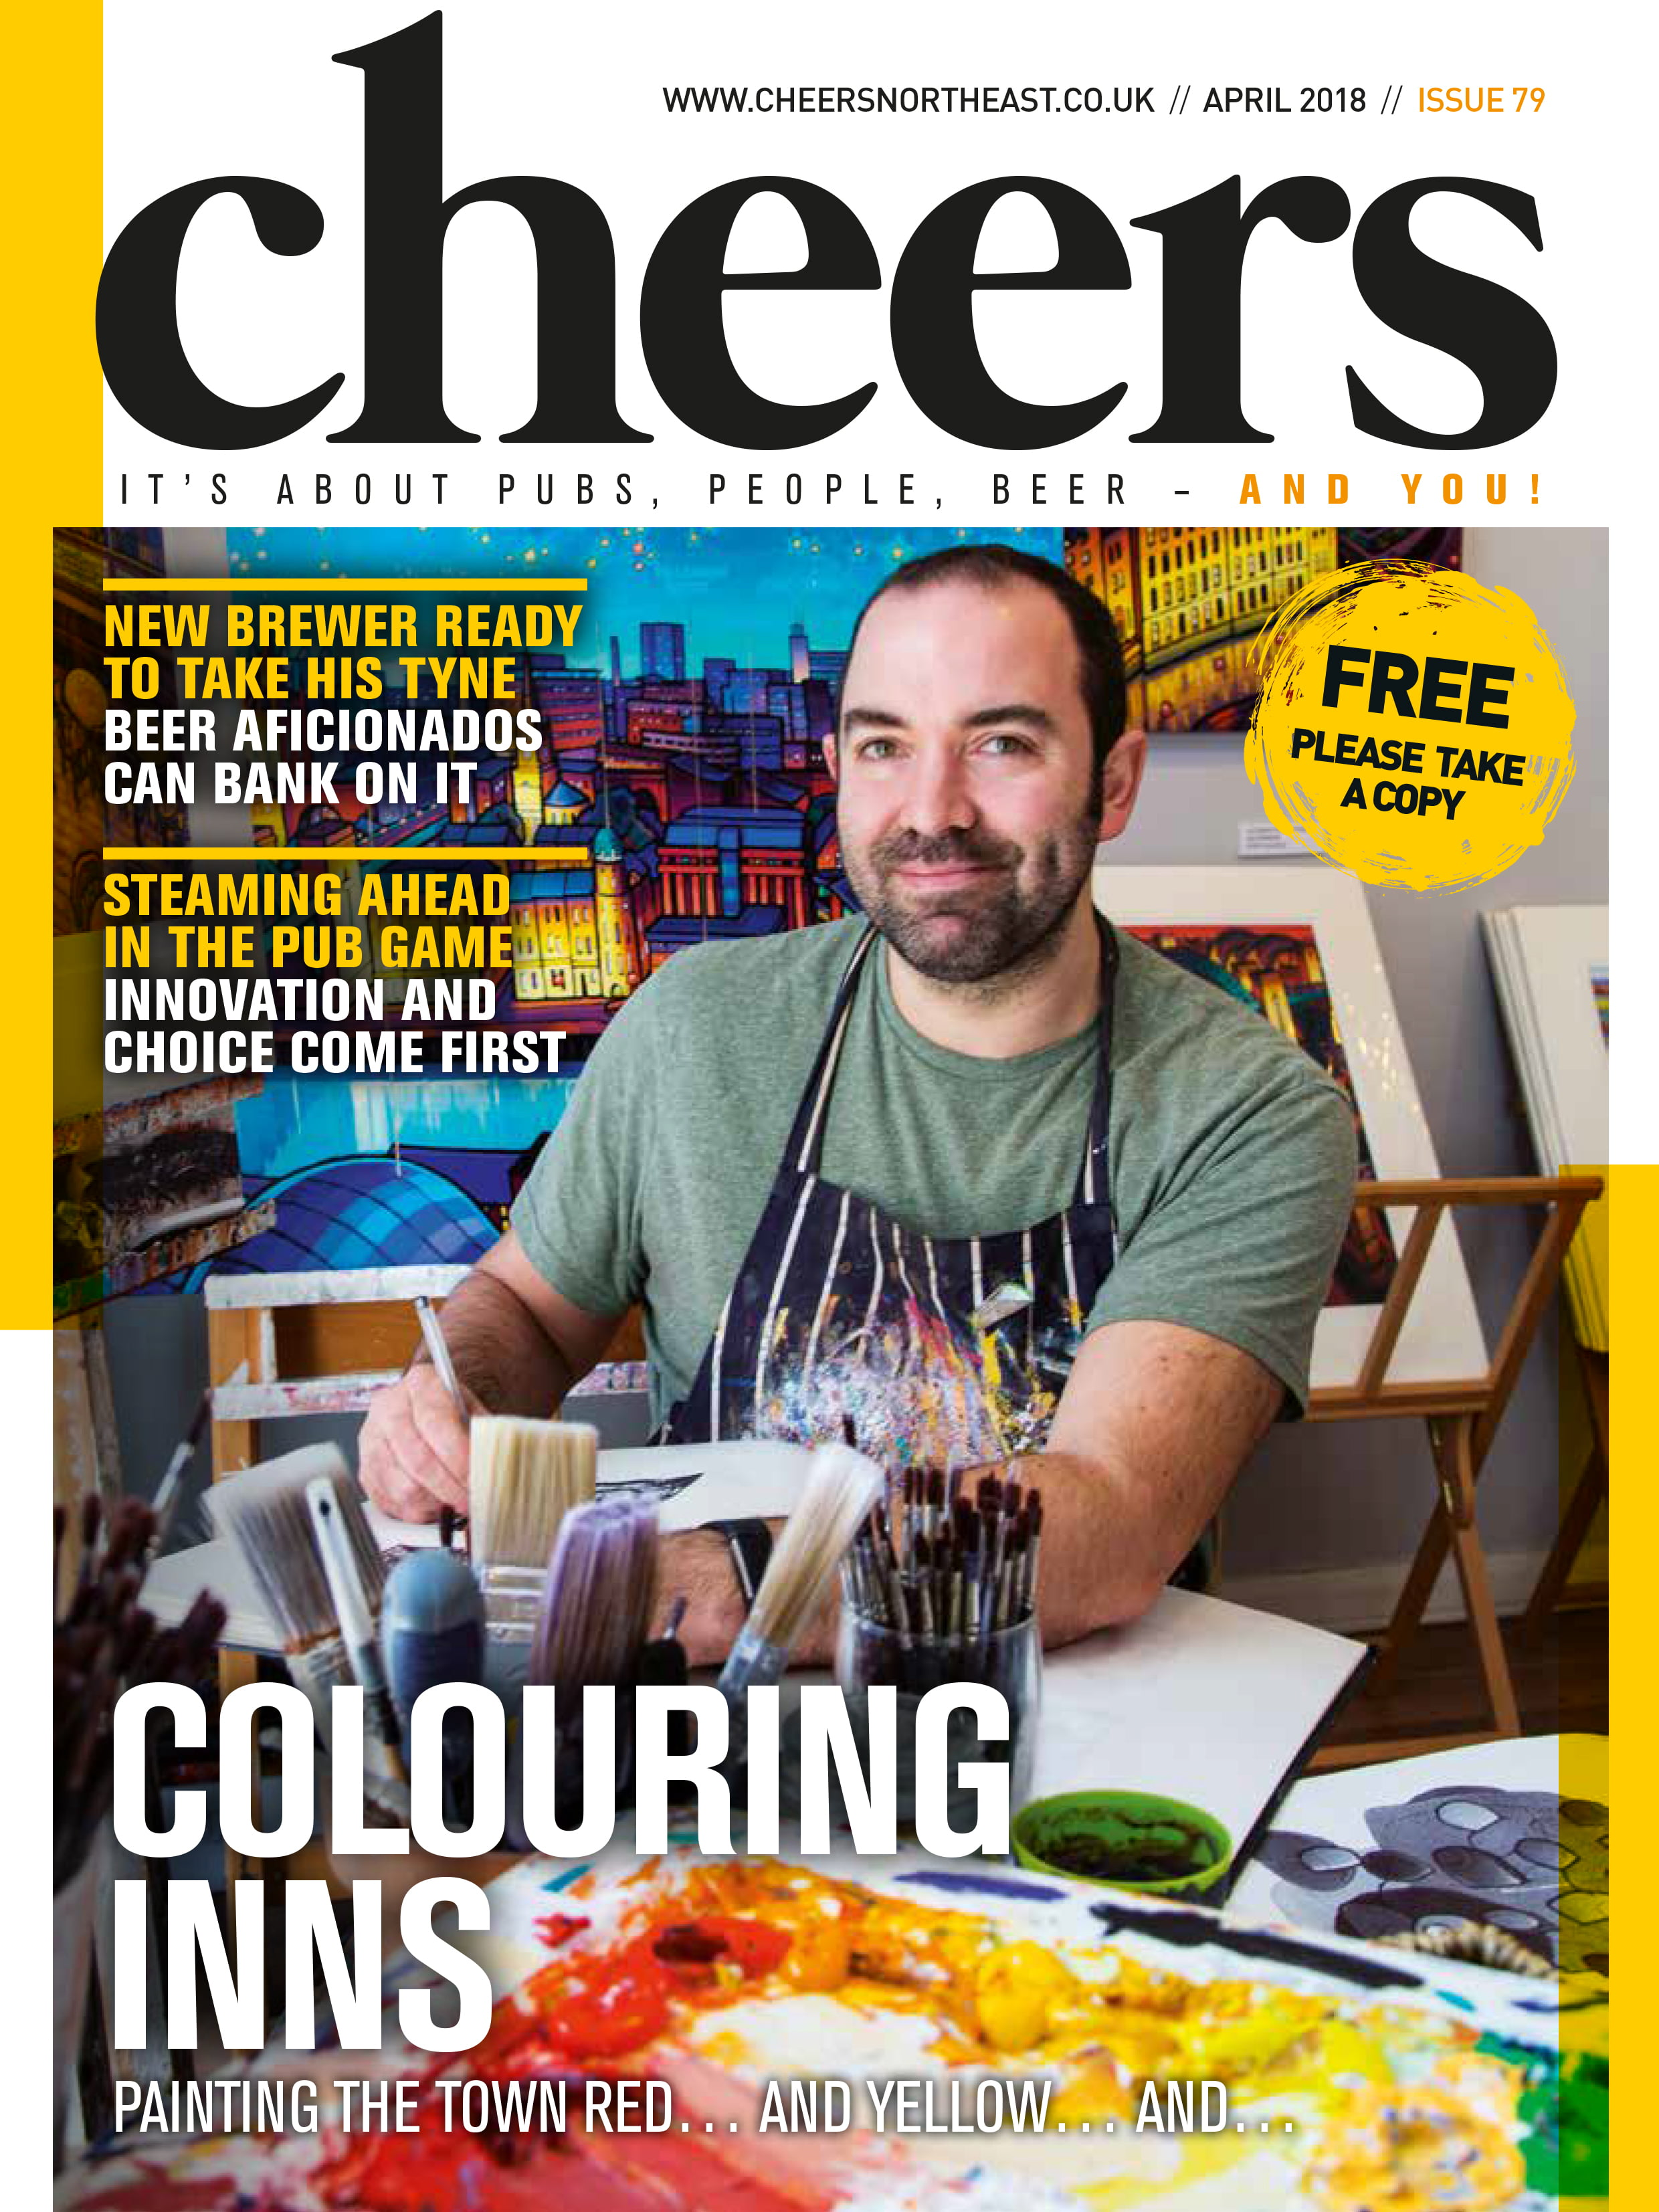 Cheers issue 79